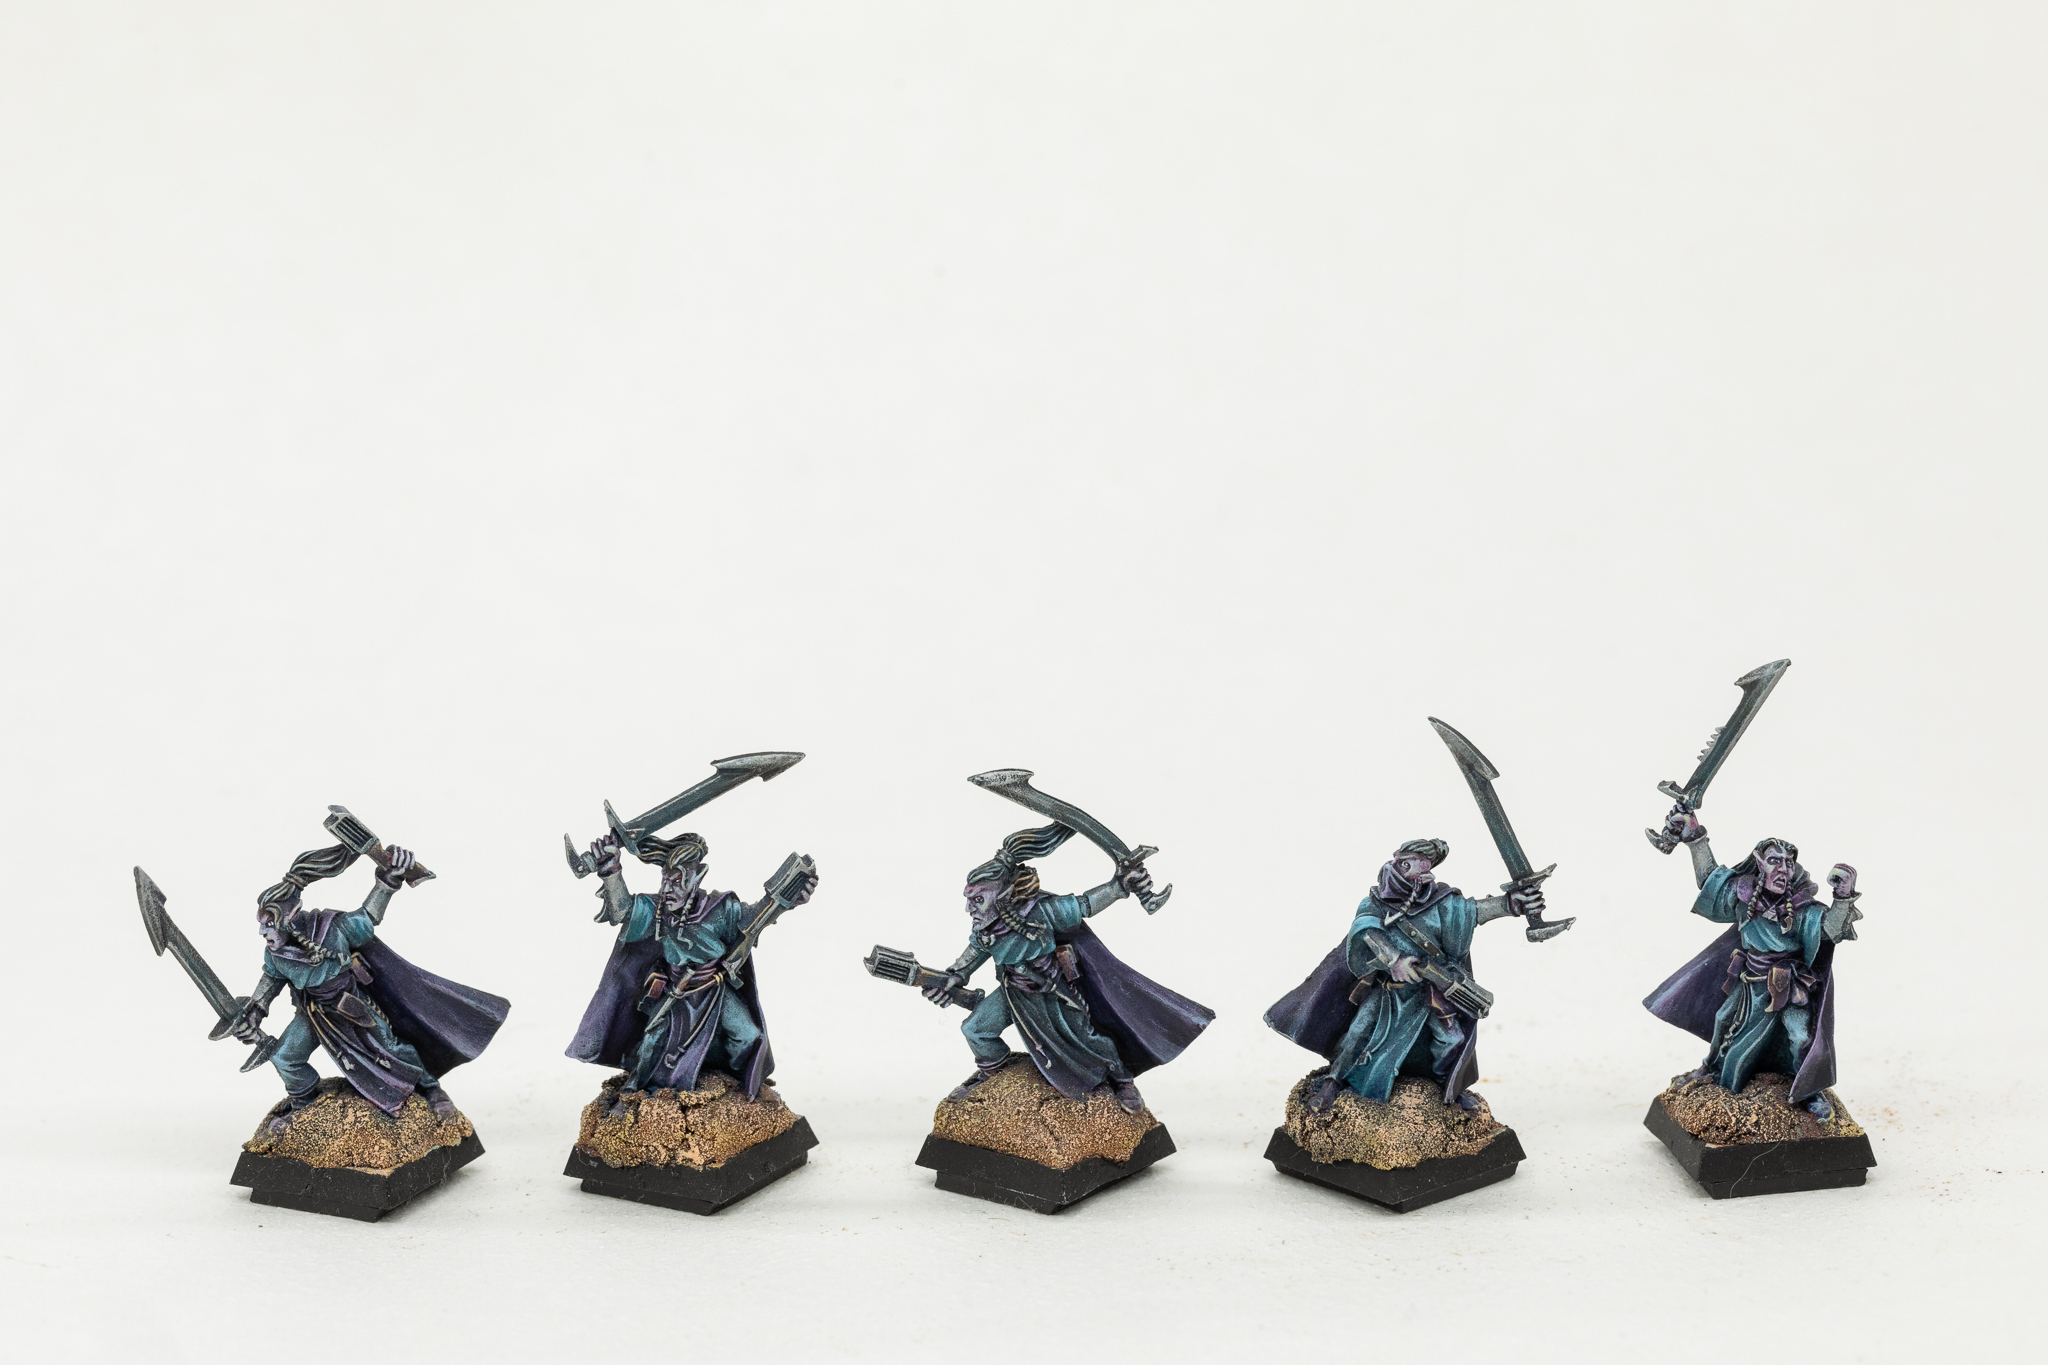 vente-figurines-elfesnoirs0014.jpg